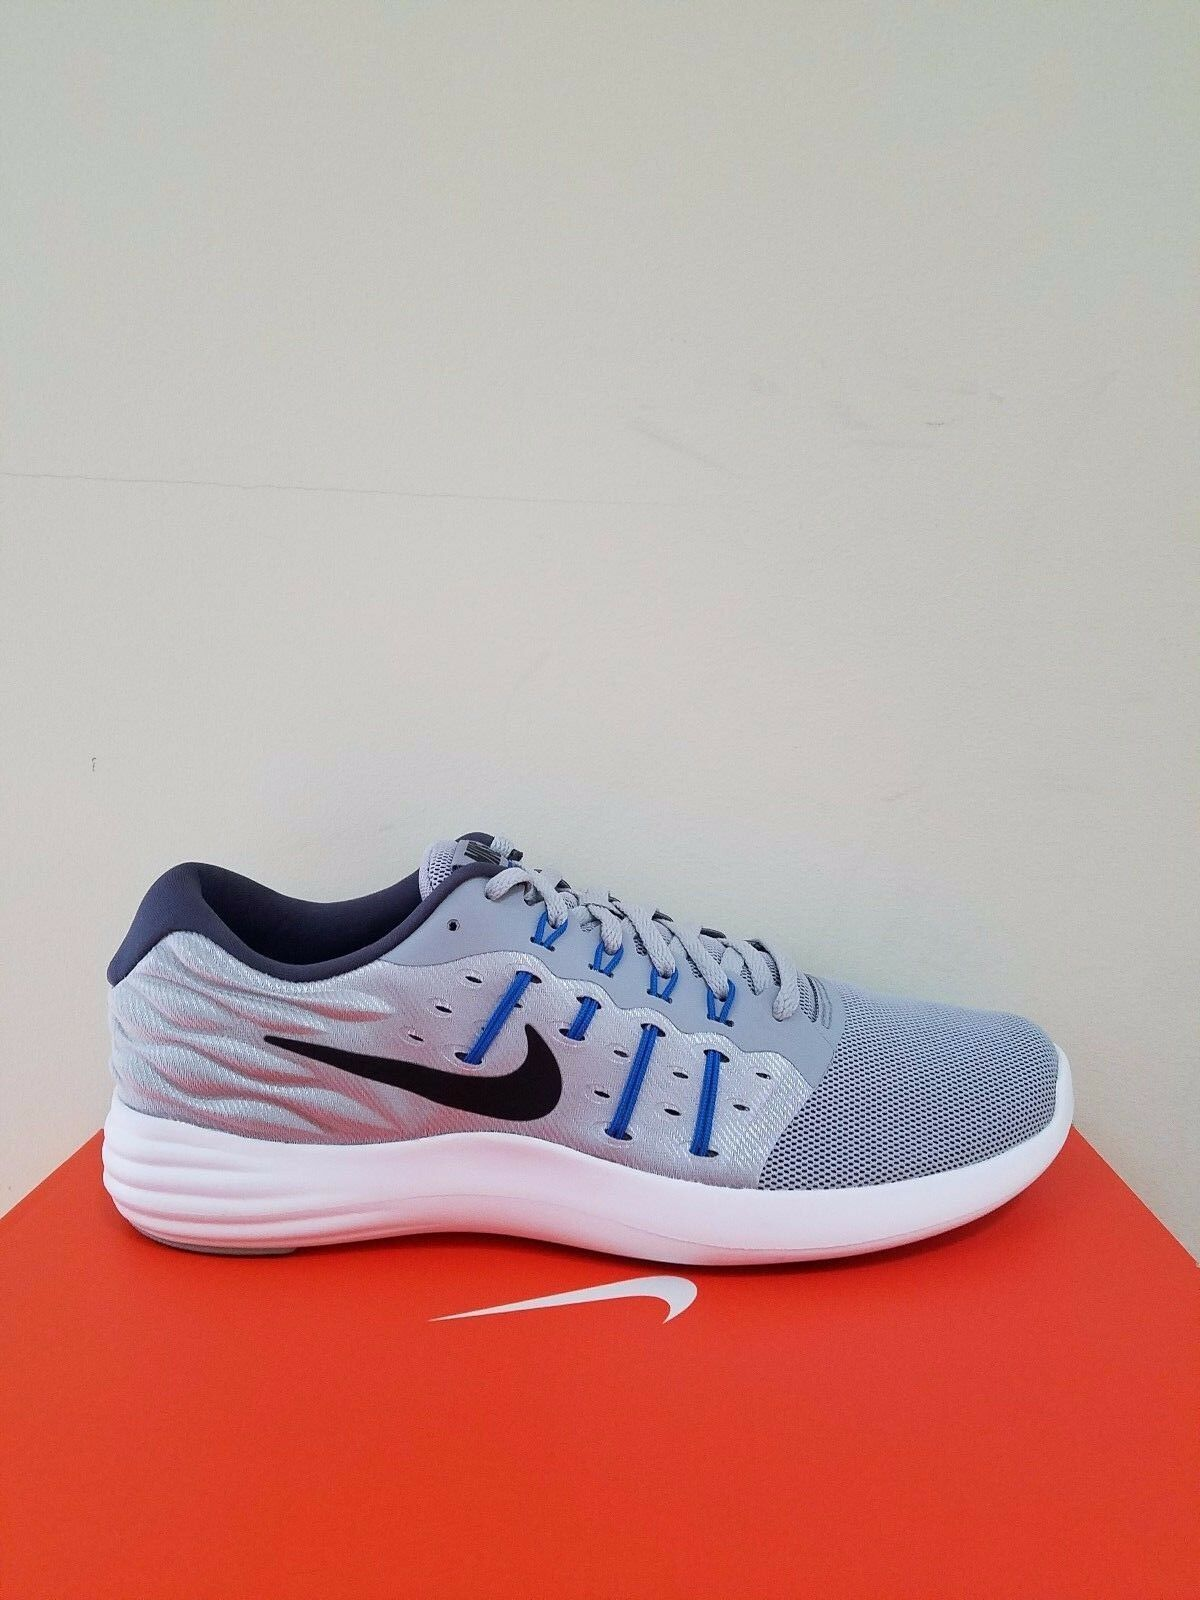 Nike Men's  Lunarstelos  Running Shoes Size 11 NIB